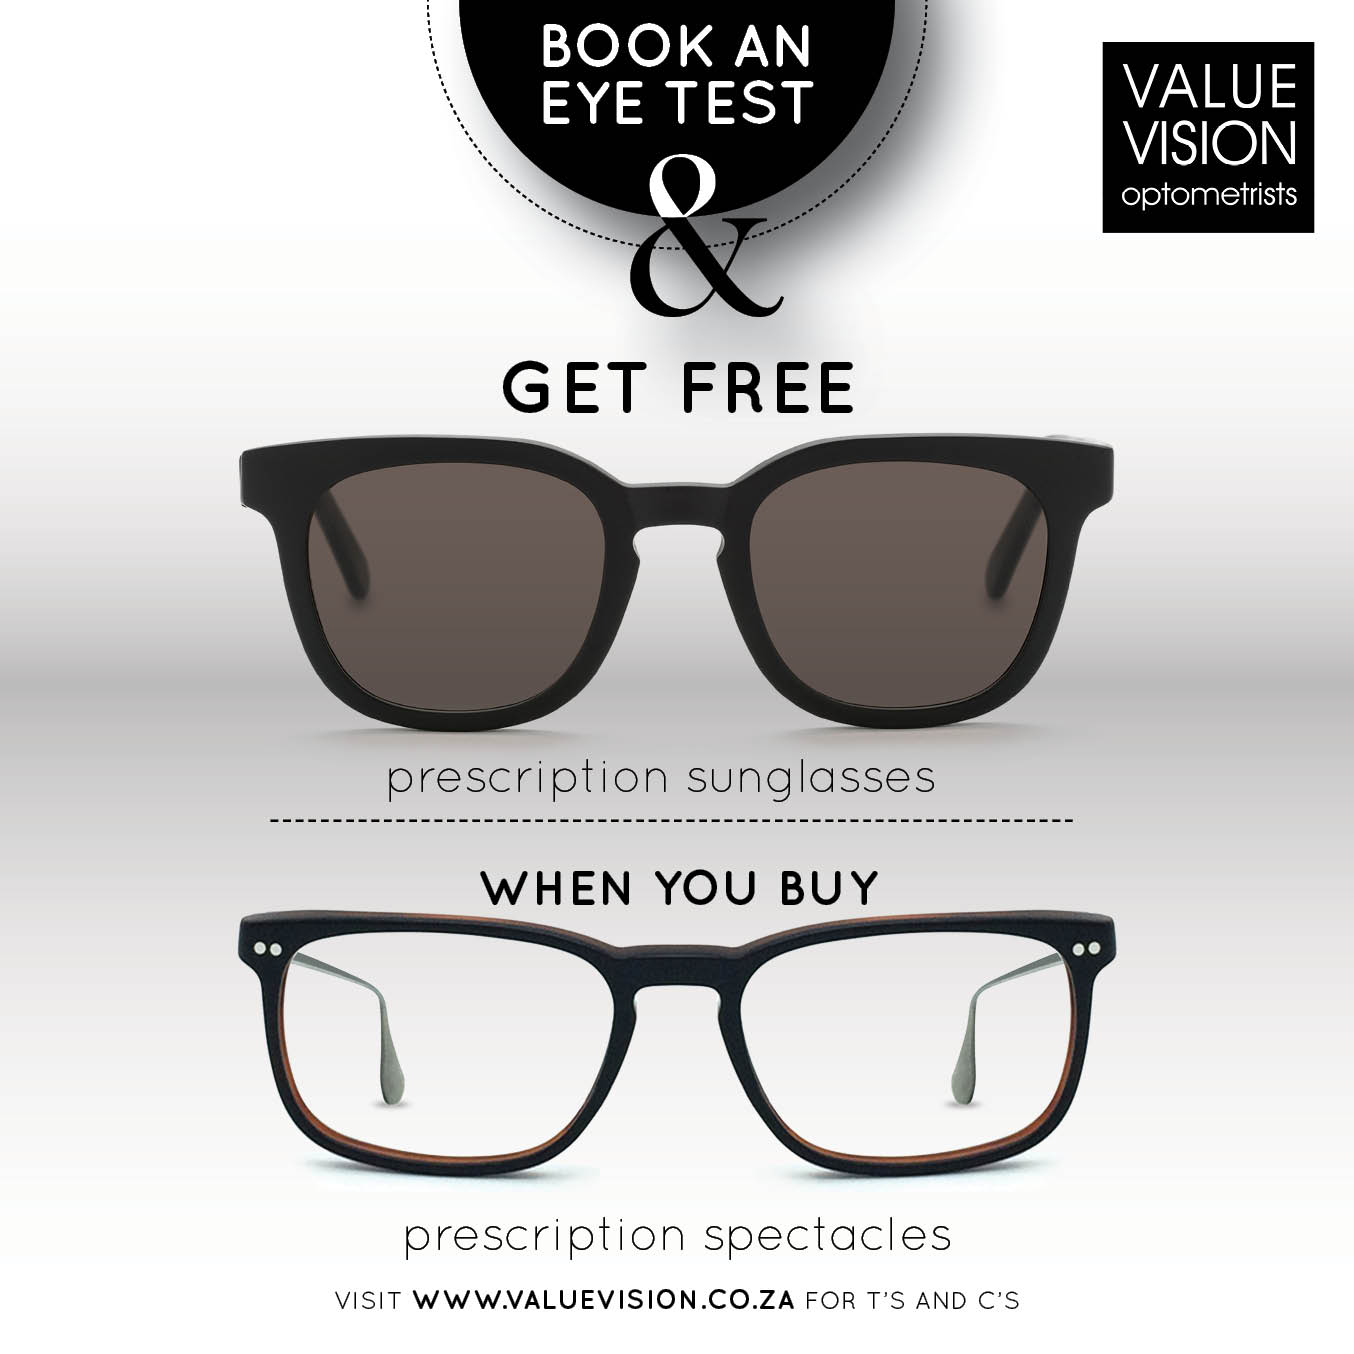 Value Vision -This Practice Is Currently Participating Summer Promotion